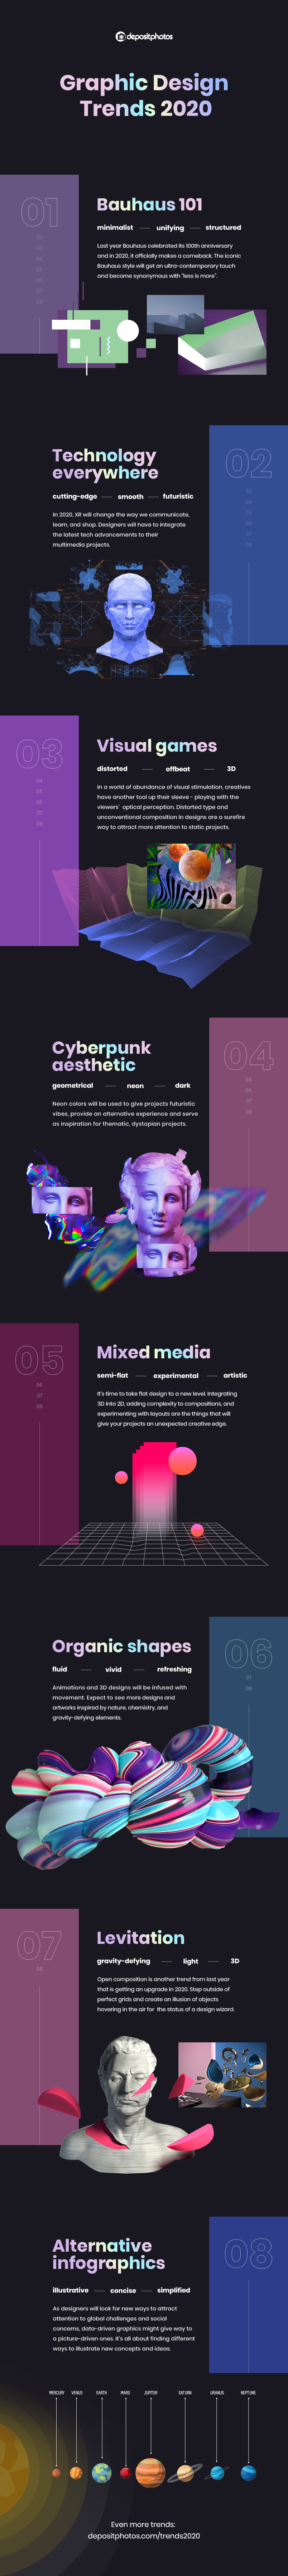 Graphic Design Trends 2020 to Enter the New Decade [Infographic]